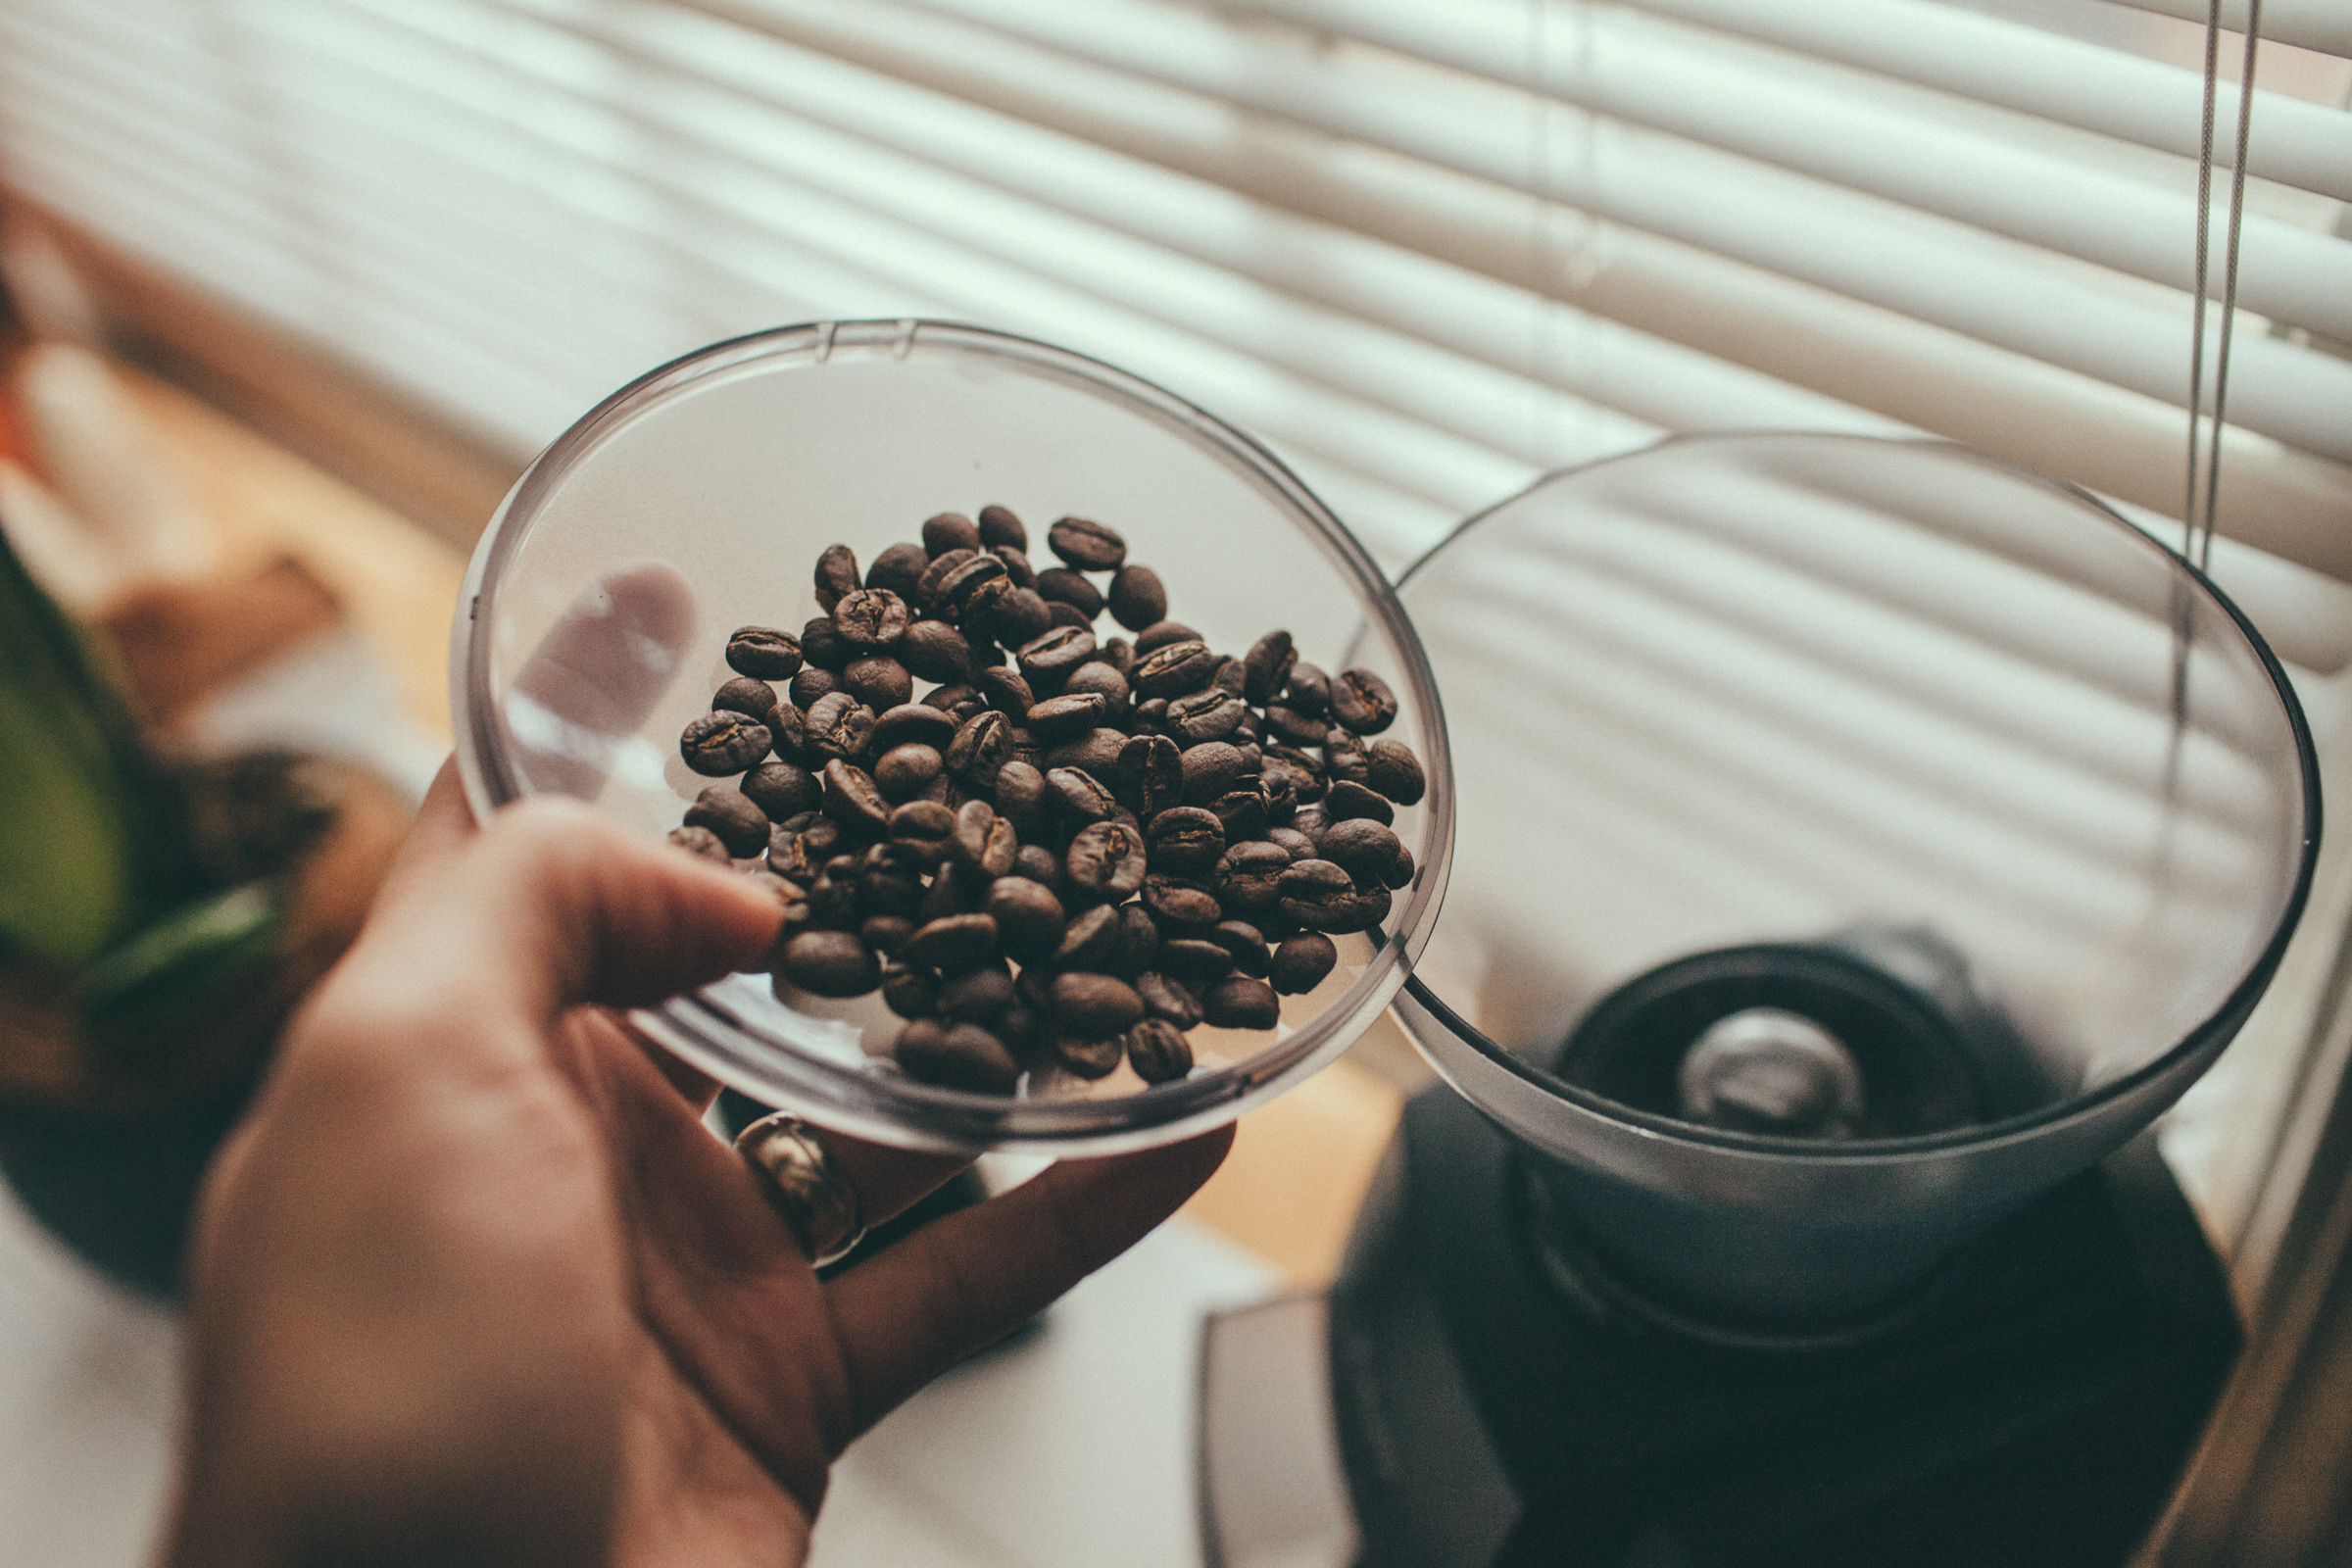 A good burr grinder is essential to making great coffee at home